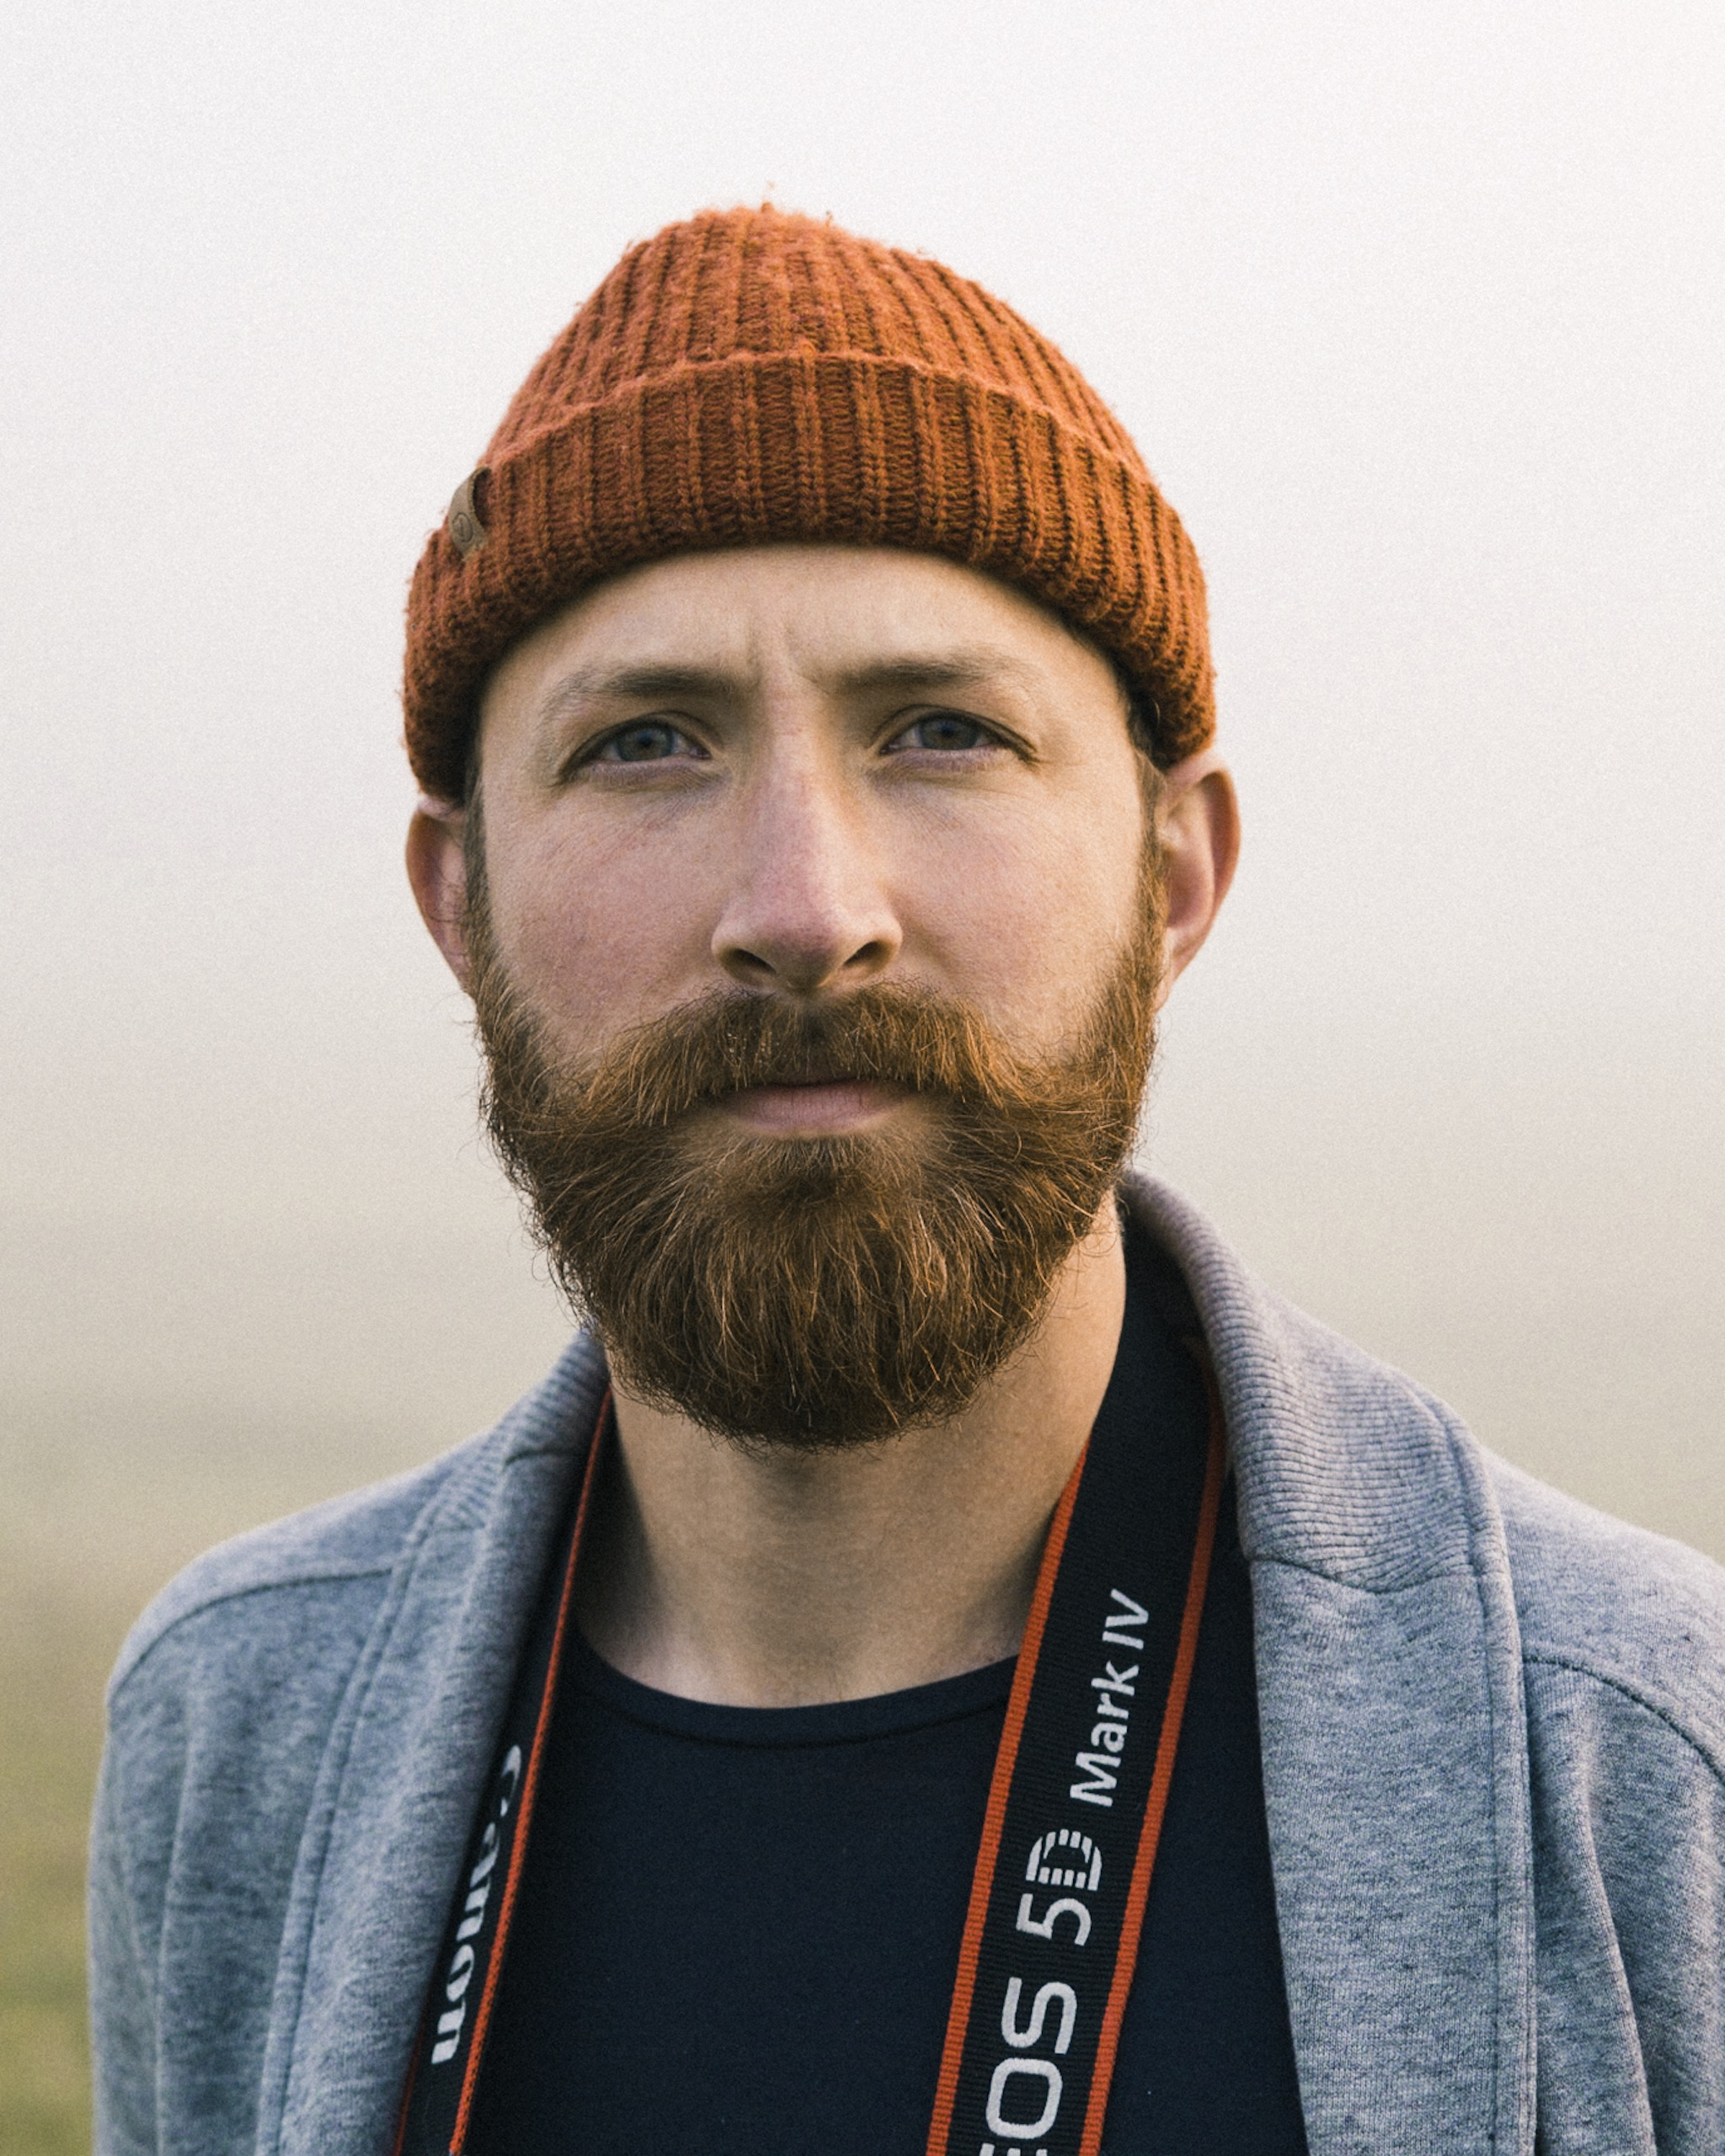 Josh Vertucci is an experienced photographer, director, and music composer who has work with brand giants such as ABC/Disney, Facebook and HP. He is passionate about people, the uniqueness of perspective and creating impactful art that affects the lives around him.